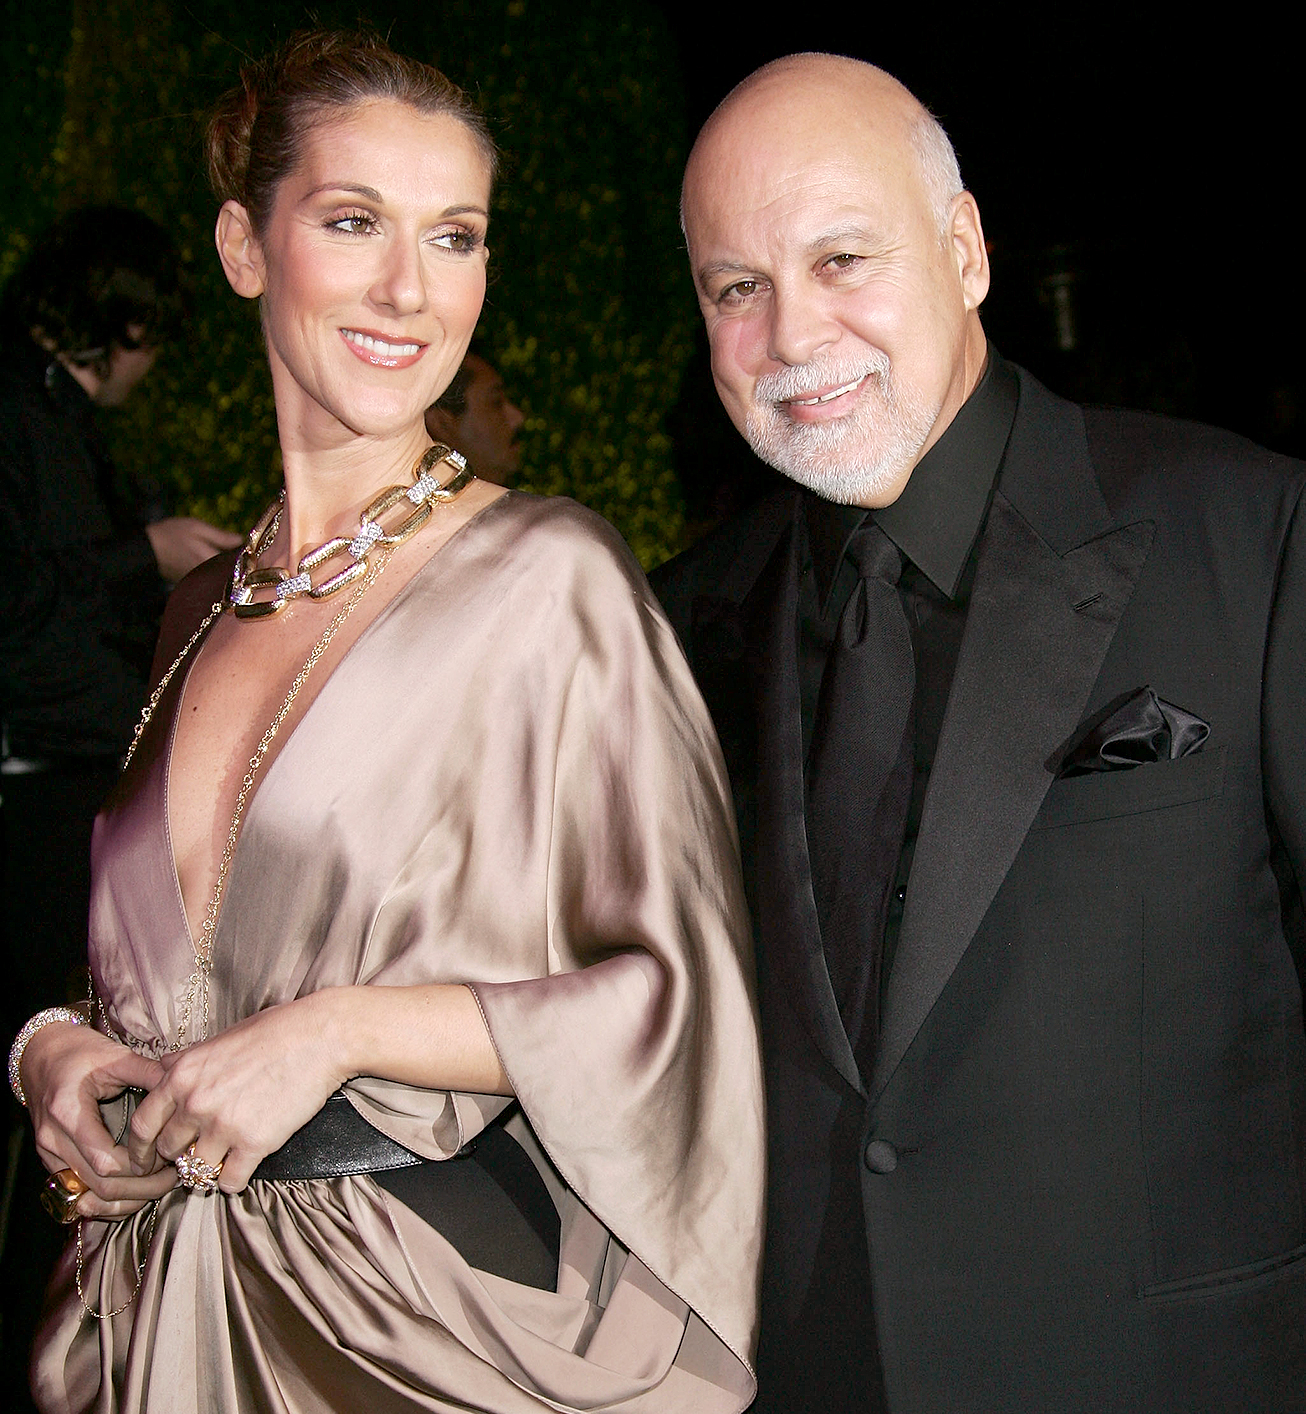 Celine Dion and Rene Angelil arrives at the 2007 Vanity Fair Oscar Party at Mortons on February 25, 2007 in West Hollywood, California.